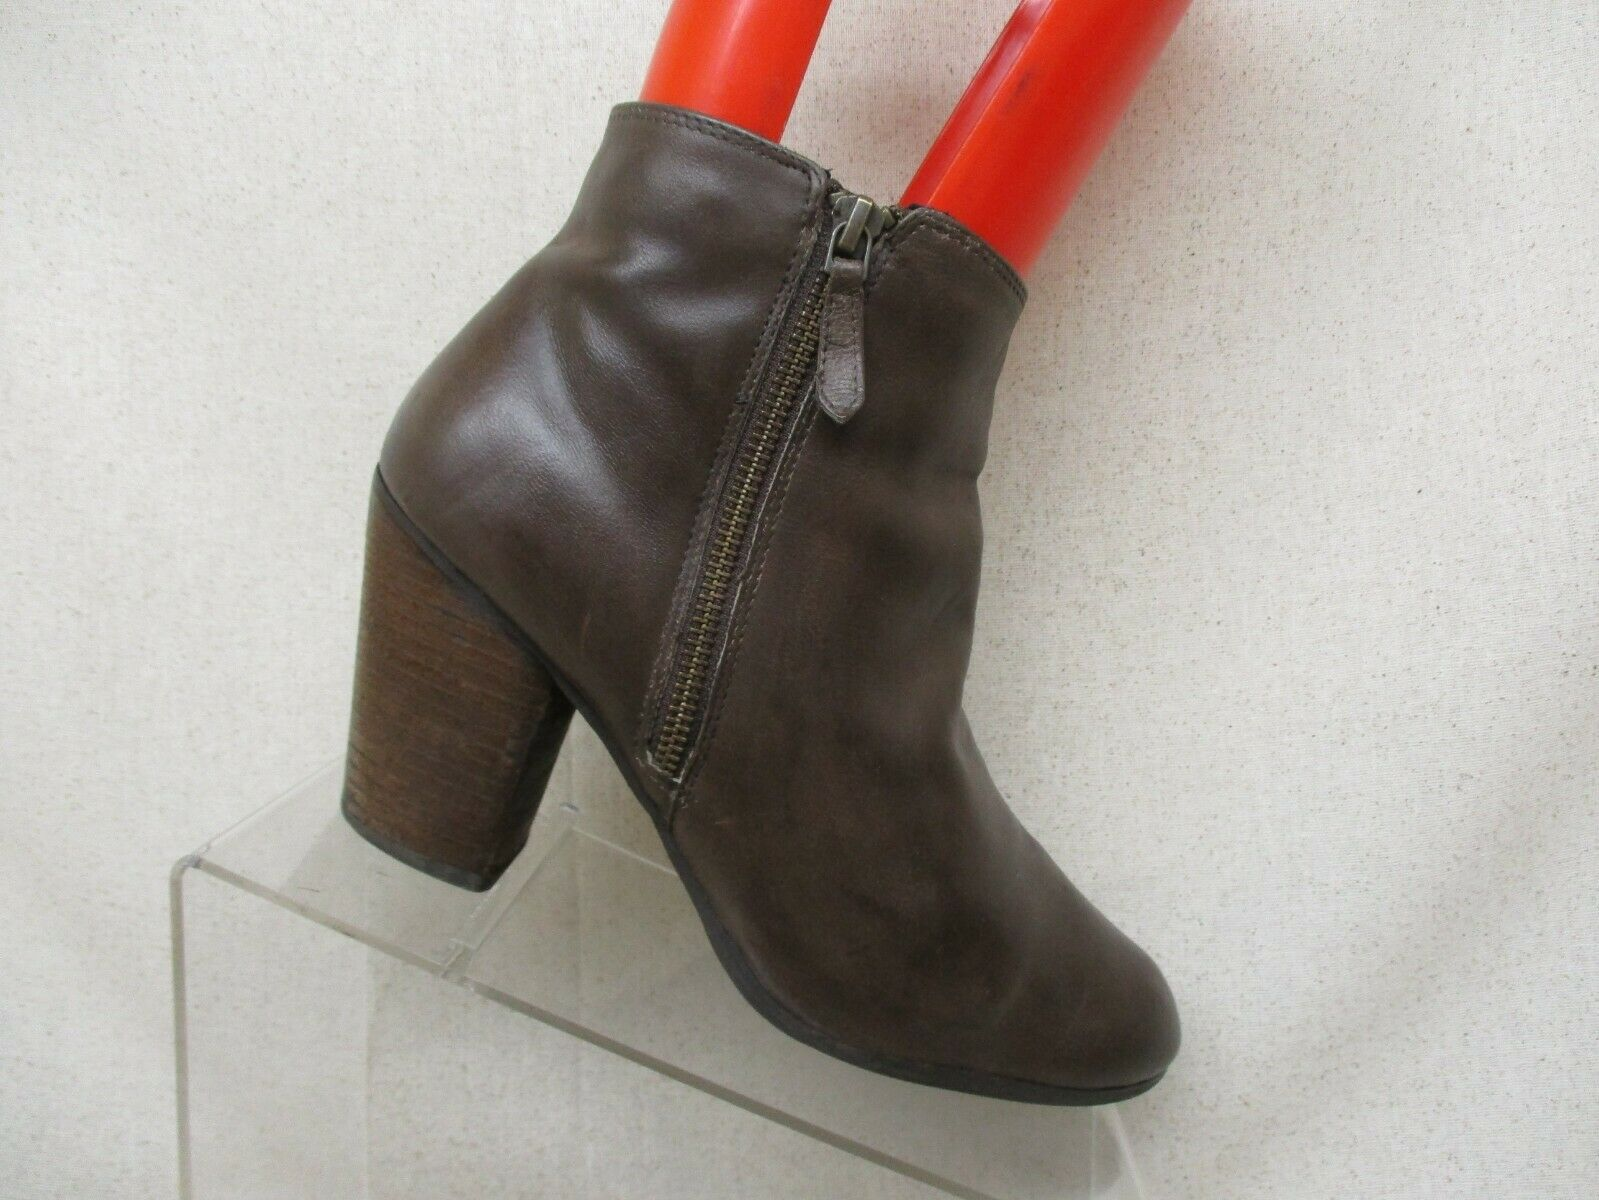 BP Brown Leather Side Zip Ankle Fashion Boots Bootie Size 9.5 M Style 58665